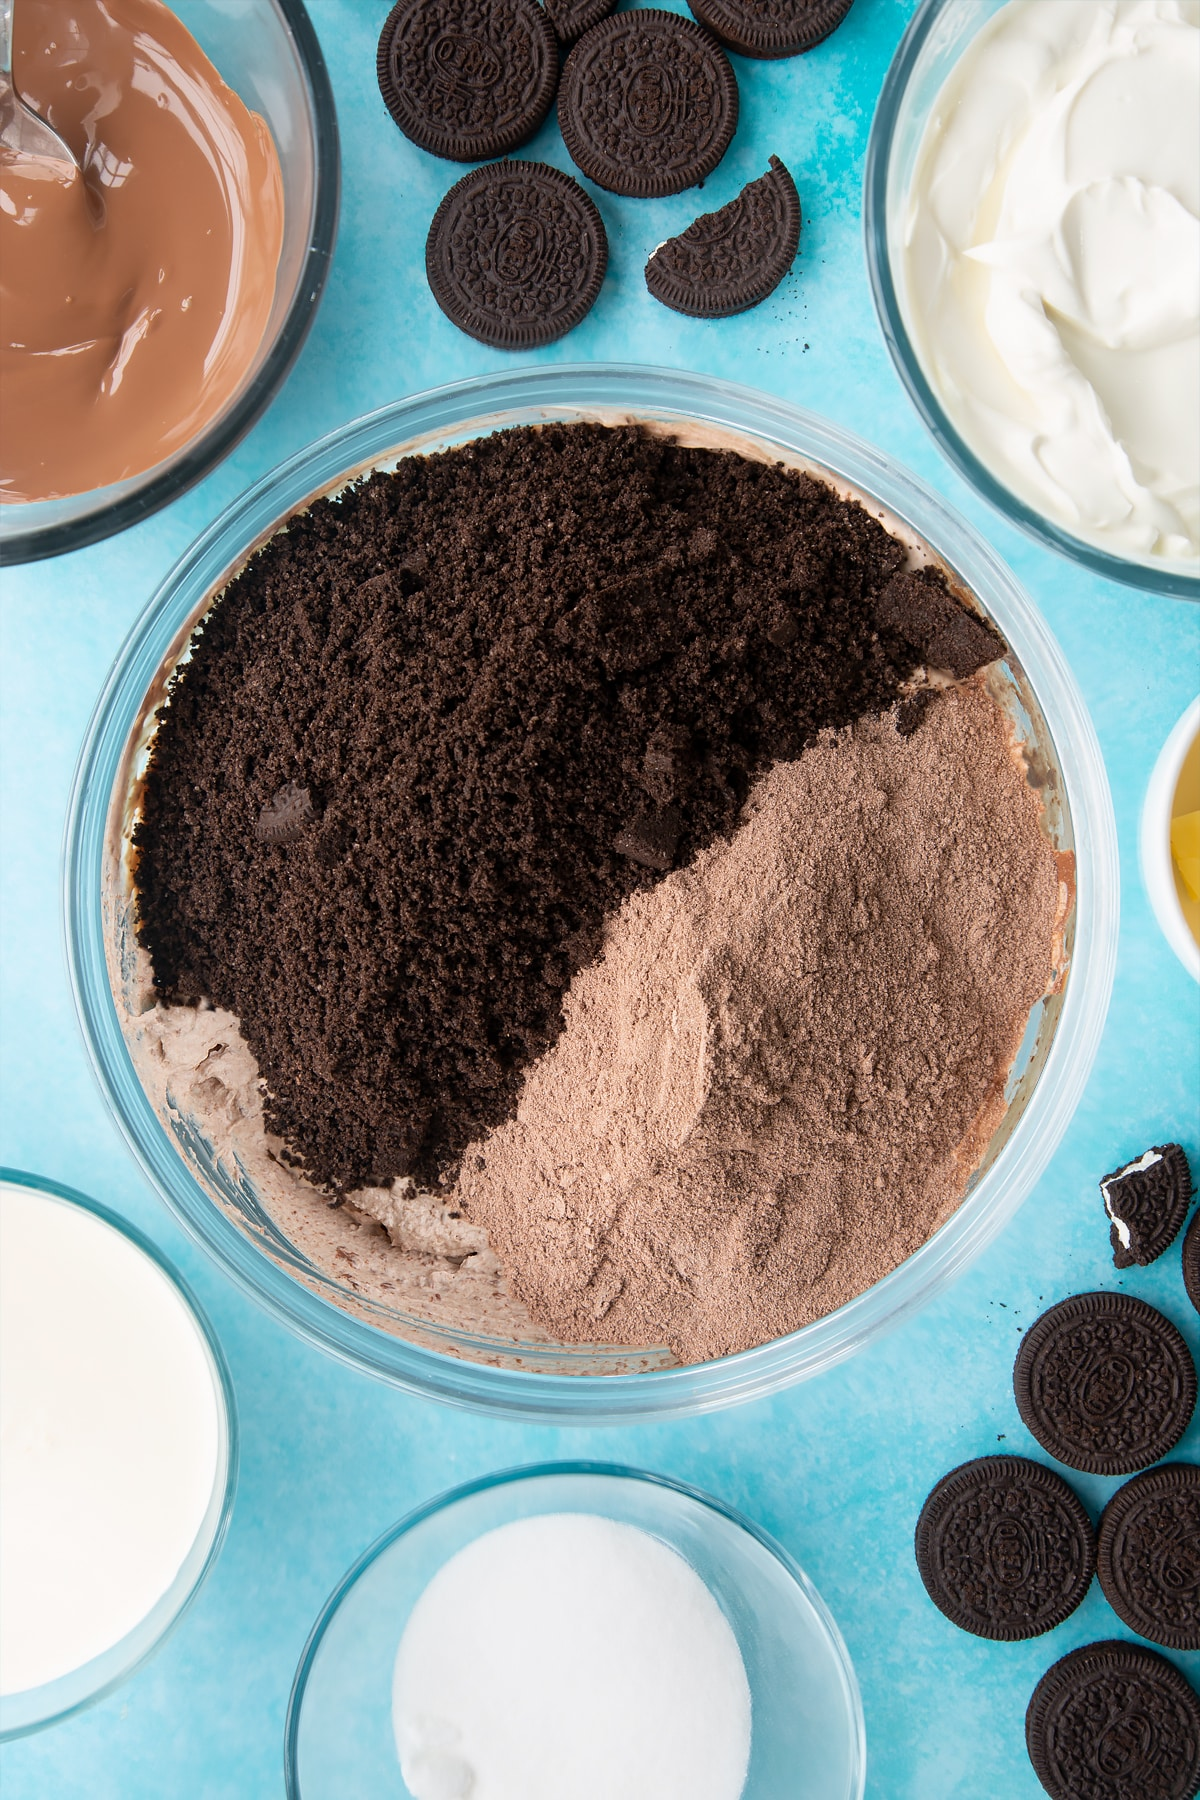 Overhead shot of whipped mixture, orea crumb and cocoa powder in a large clear bowl